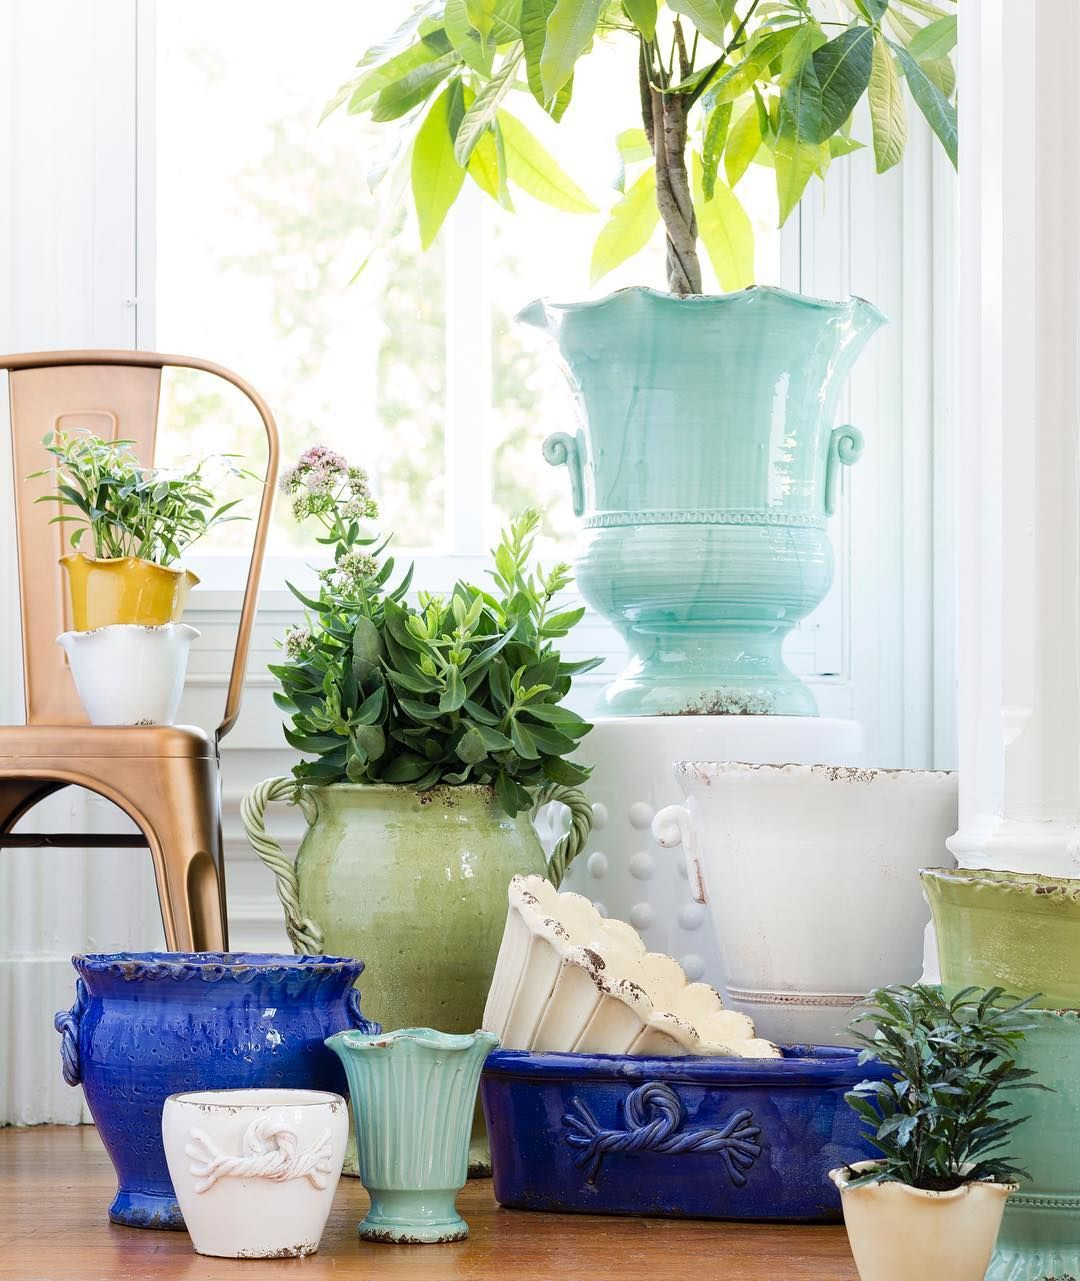 """138 Likes, 4 Comments - VIETRI, Inc. (@vietriinc) on Instagram: """"In full bloom! Fresh pieces with a sunny spring outlook - and no green thumb required."""""""